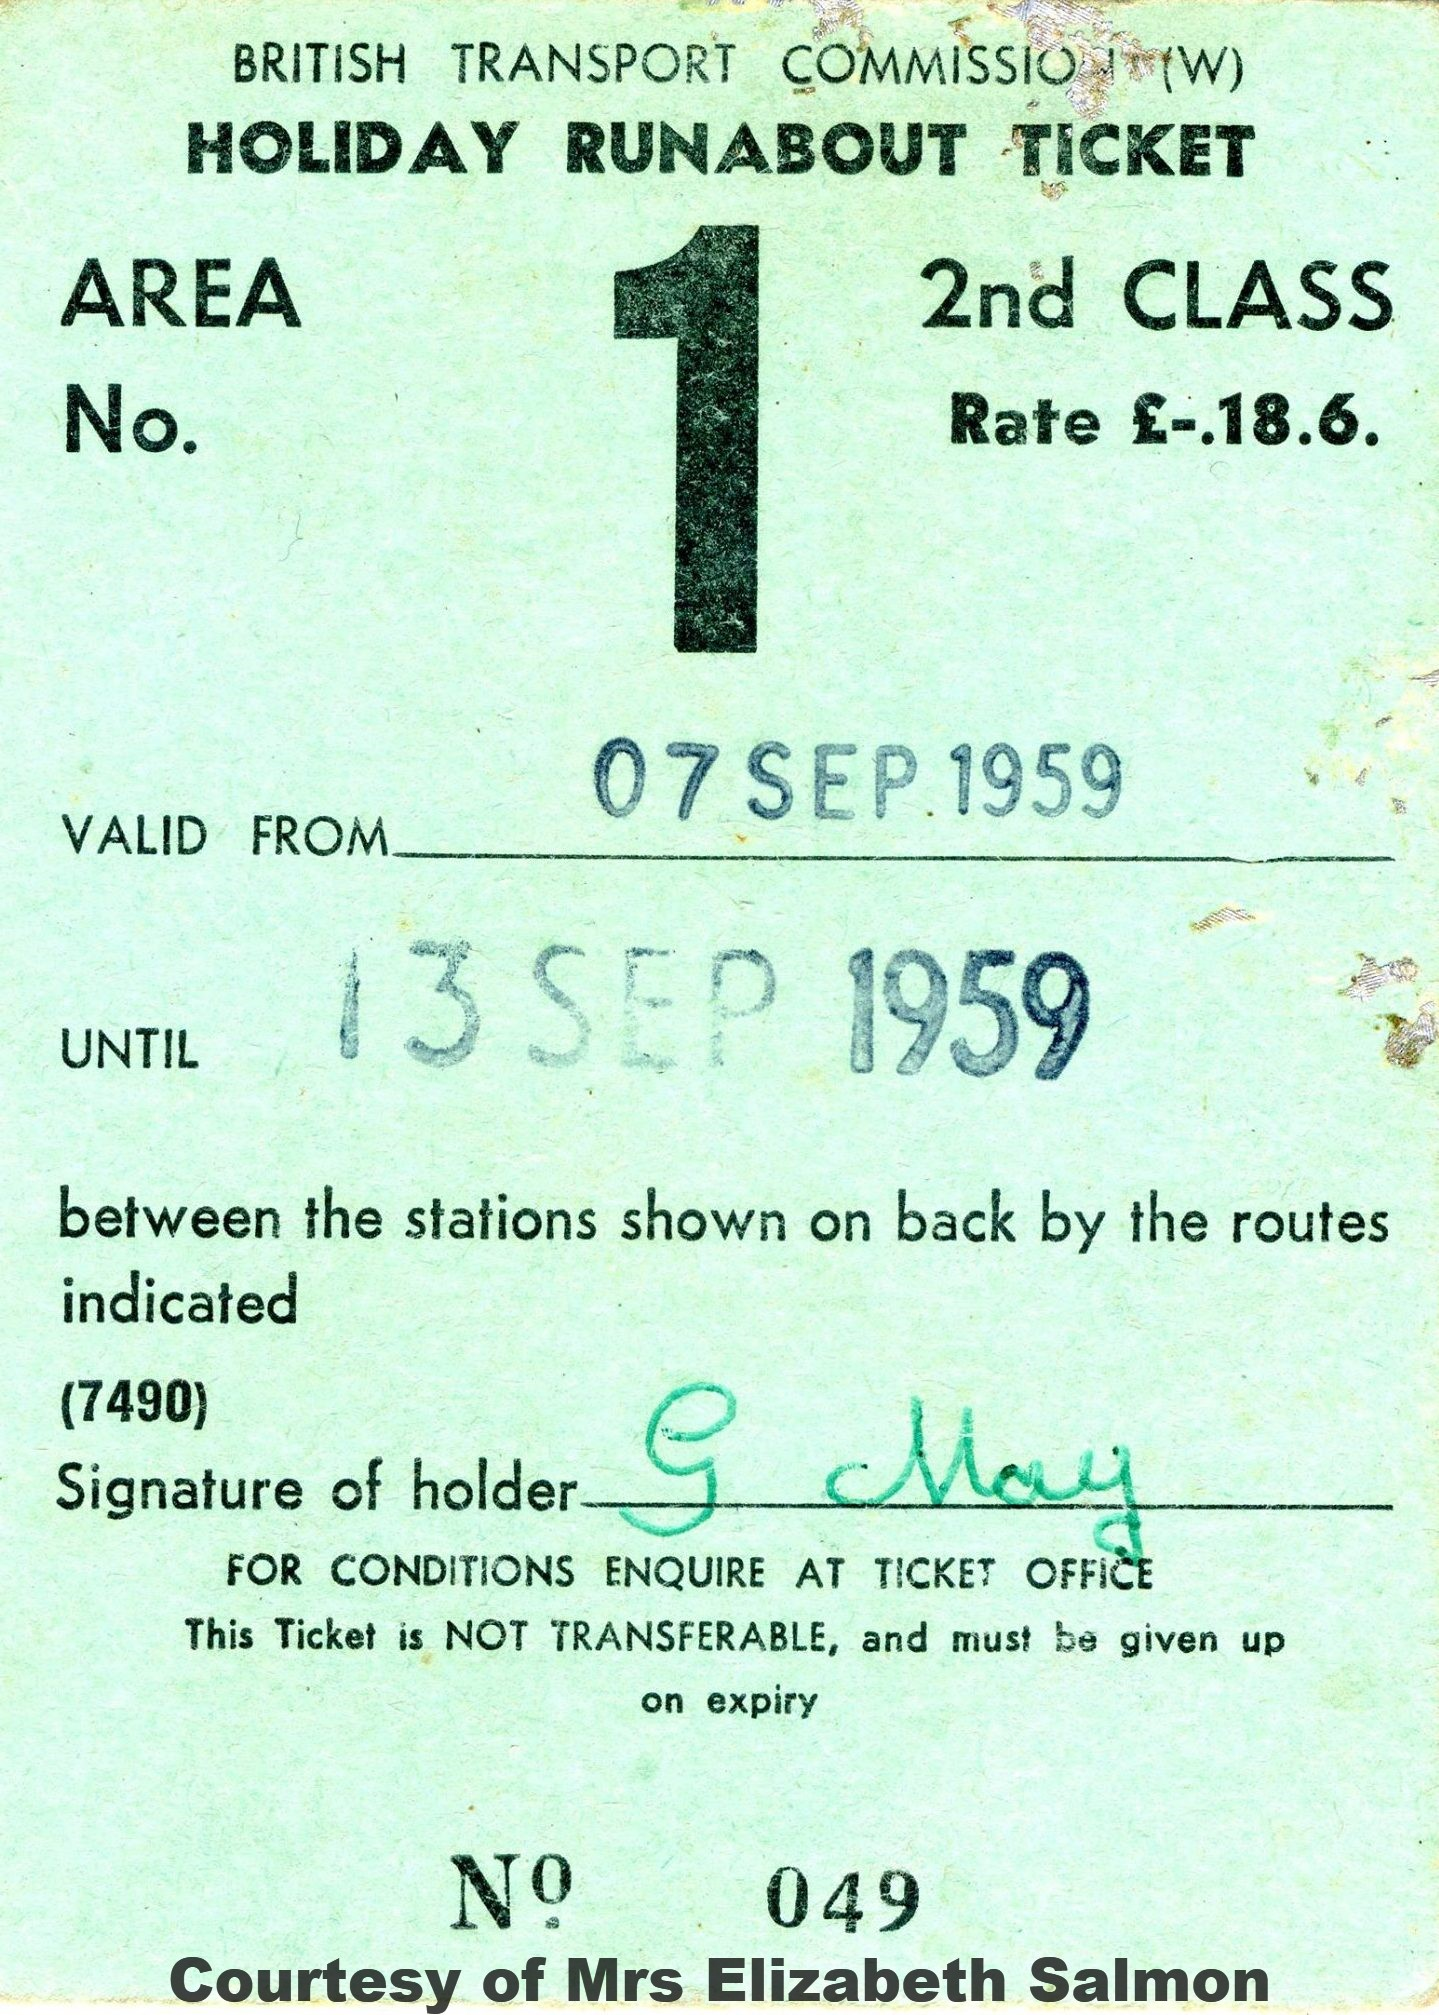 Holiday Runabout ticket